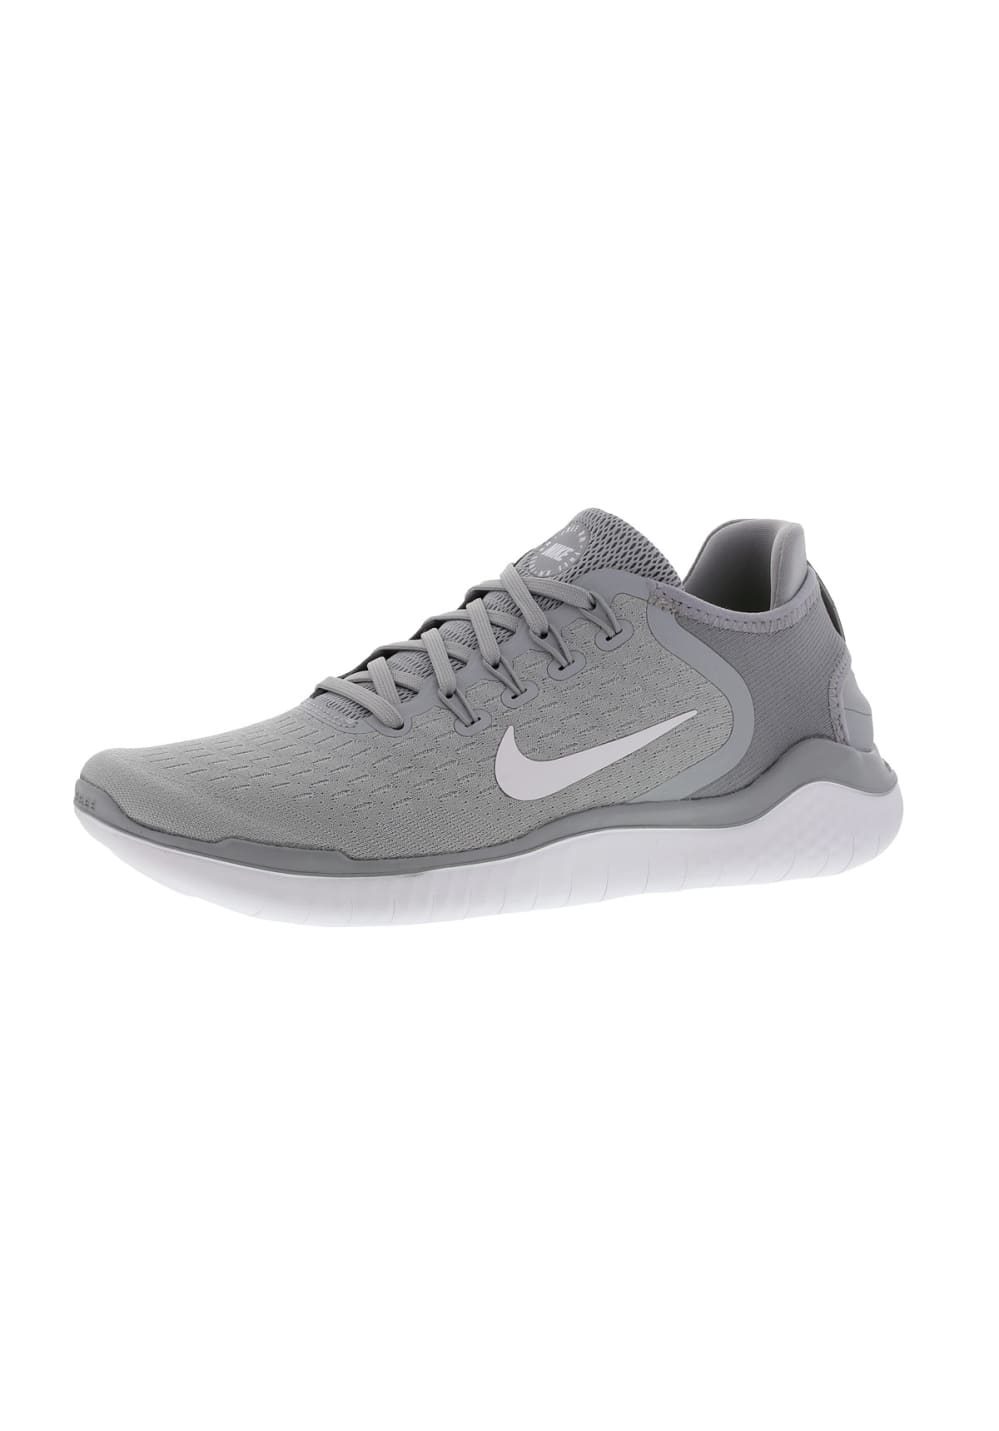 Nike free running shoes for women grey run jpg 999x1431 Nike dancing shoes 28dcf47ba